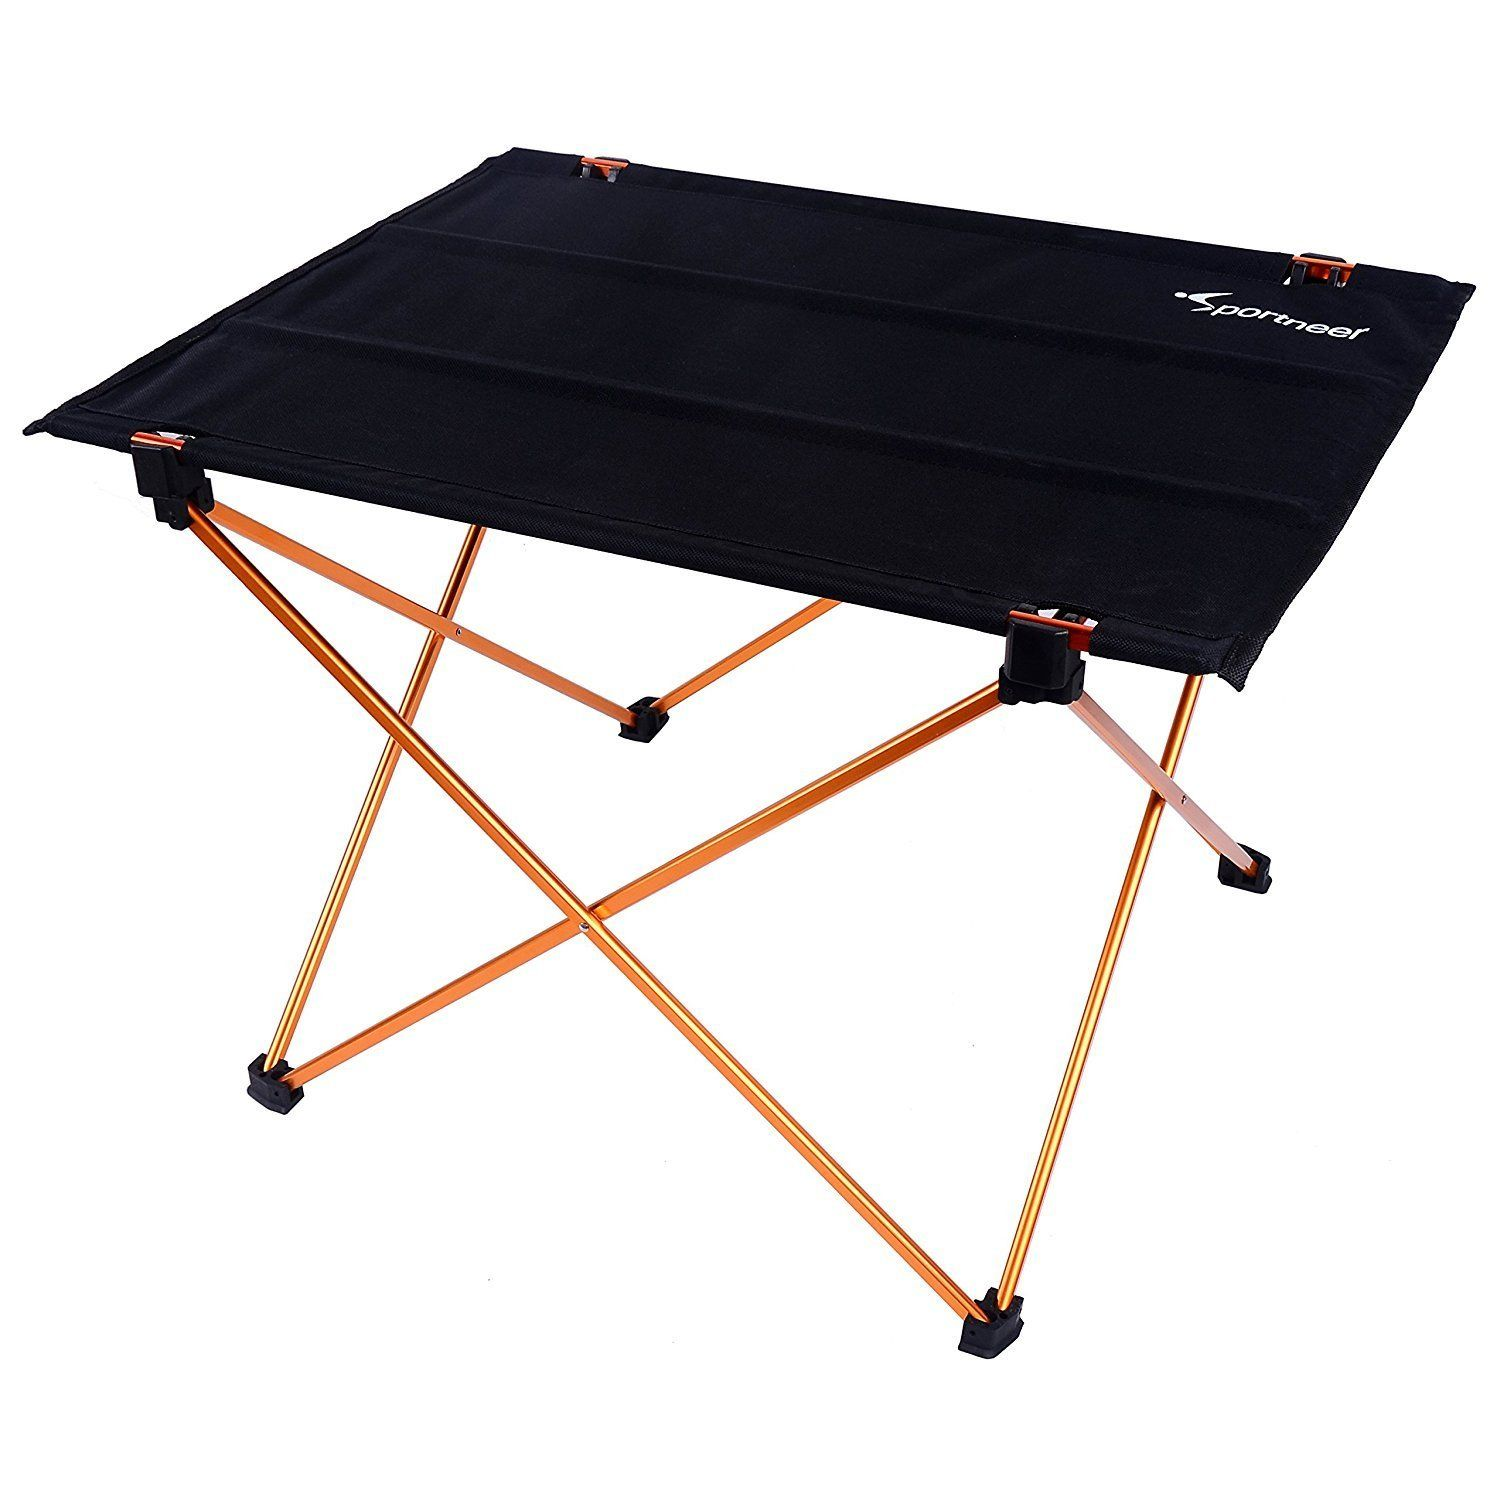 Sportneer portable lightweight folding hiking picnic camping table and chair wow i love - Lightweight camping tables ...